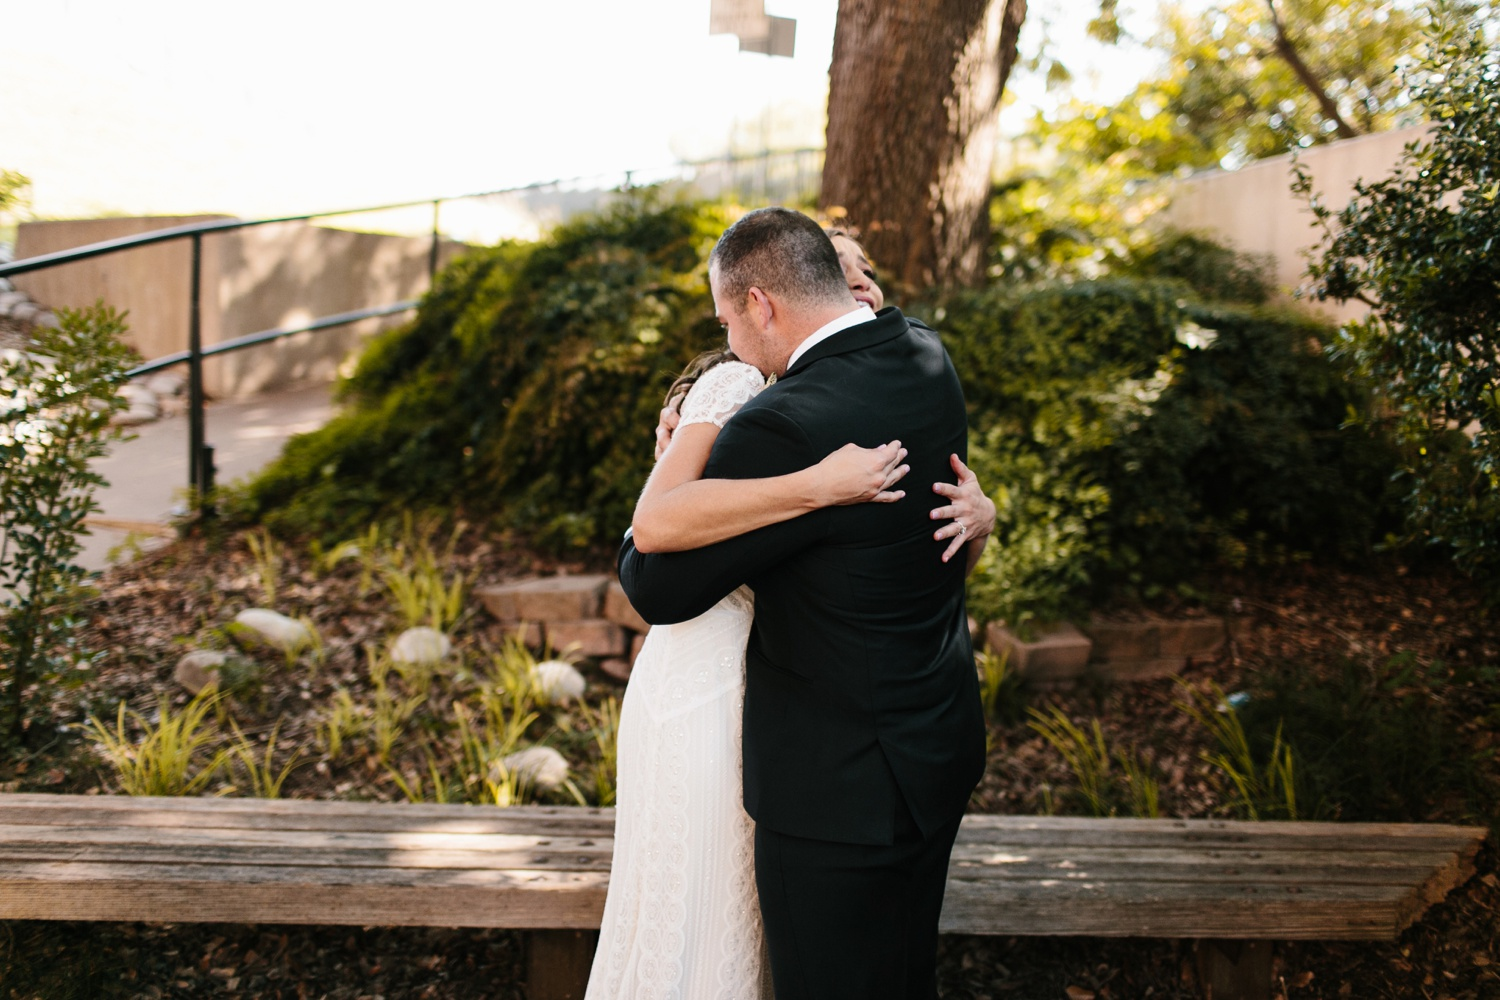 Kadee + Tyler | a raw, emotional wedding at the Filter Building on White Rock Lake in Dallas, TX by North Texas Wedding Photographer, Rachel Meagan Photography 063